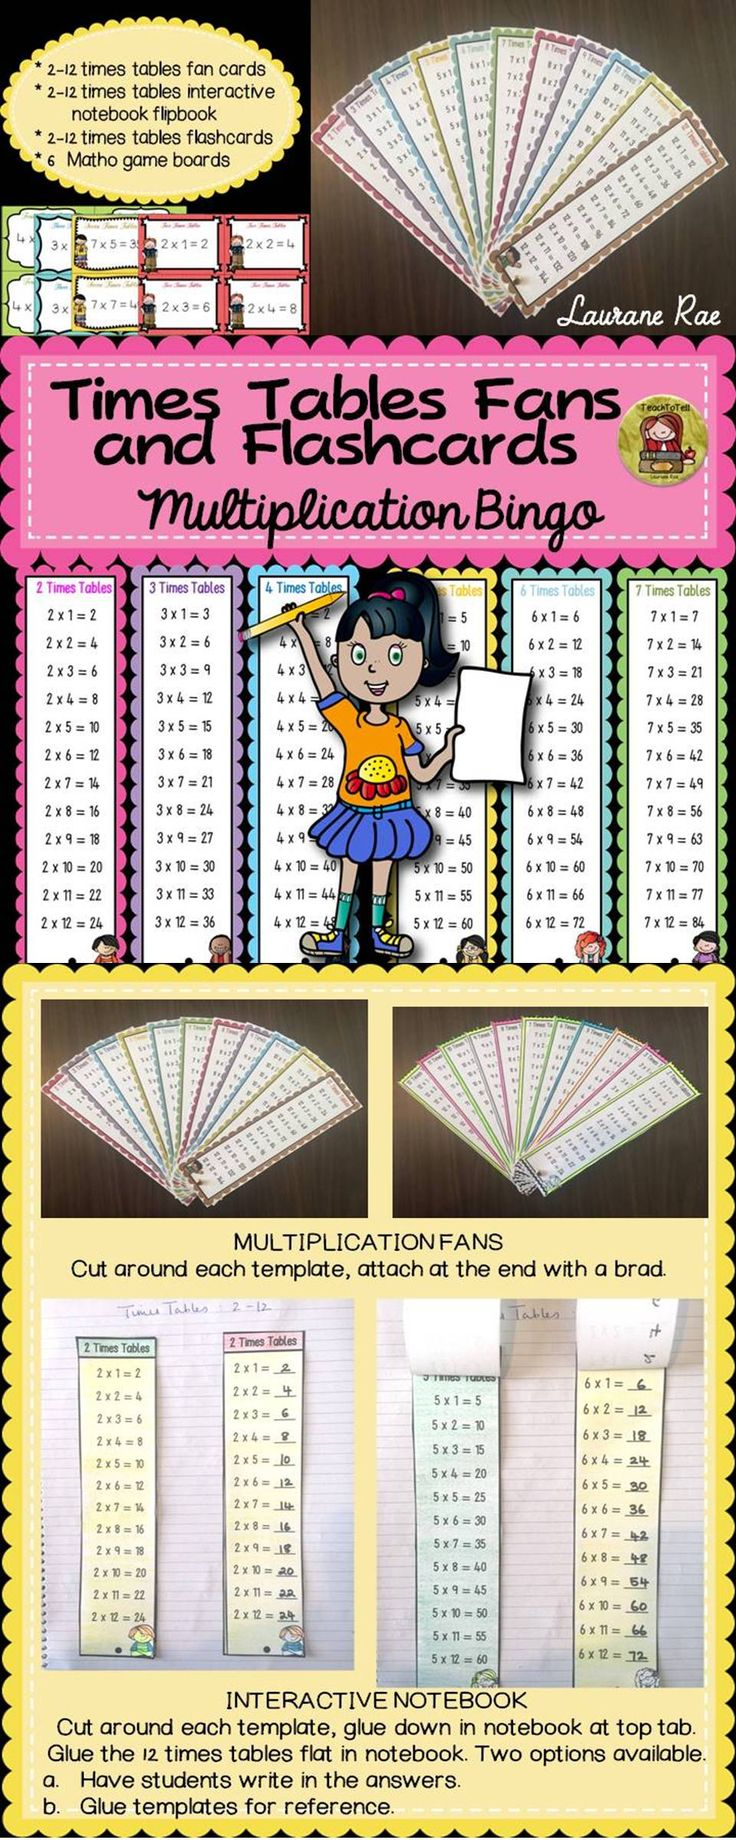 If students know their times tables, the work is half done. Think about it, so much depends upon having a good grasp of time-table facts. Problems related to division and multiplication demands strong number sense, so help your students know their multiplication facts with this fun resource. $